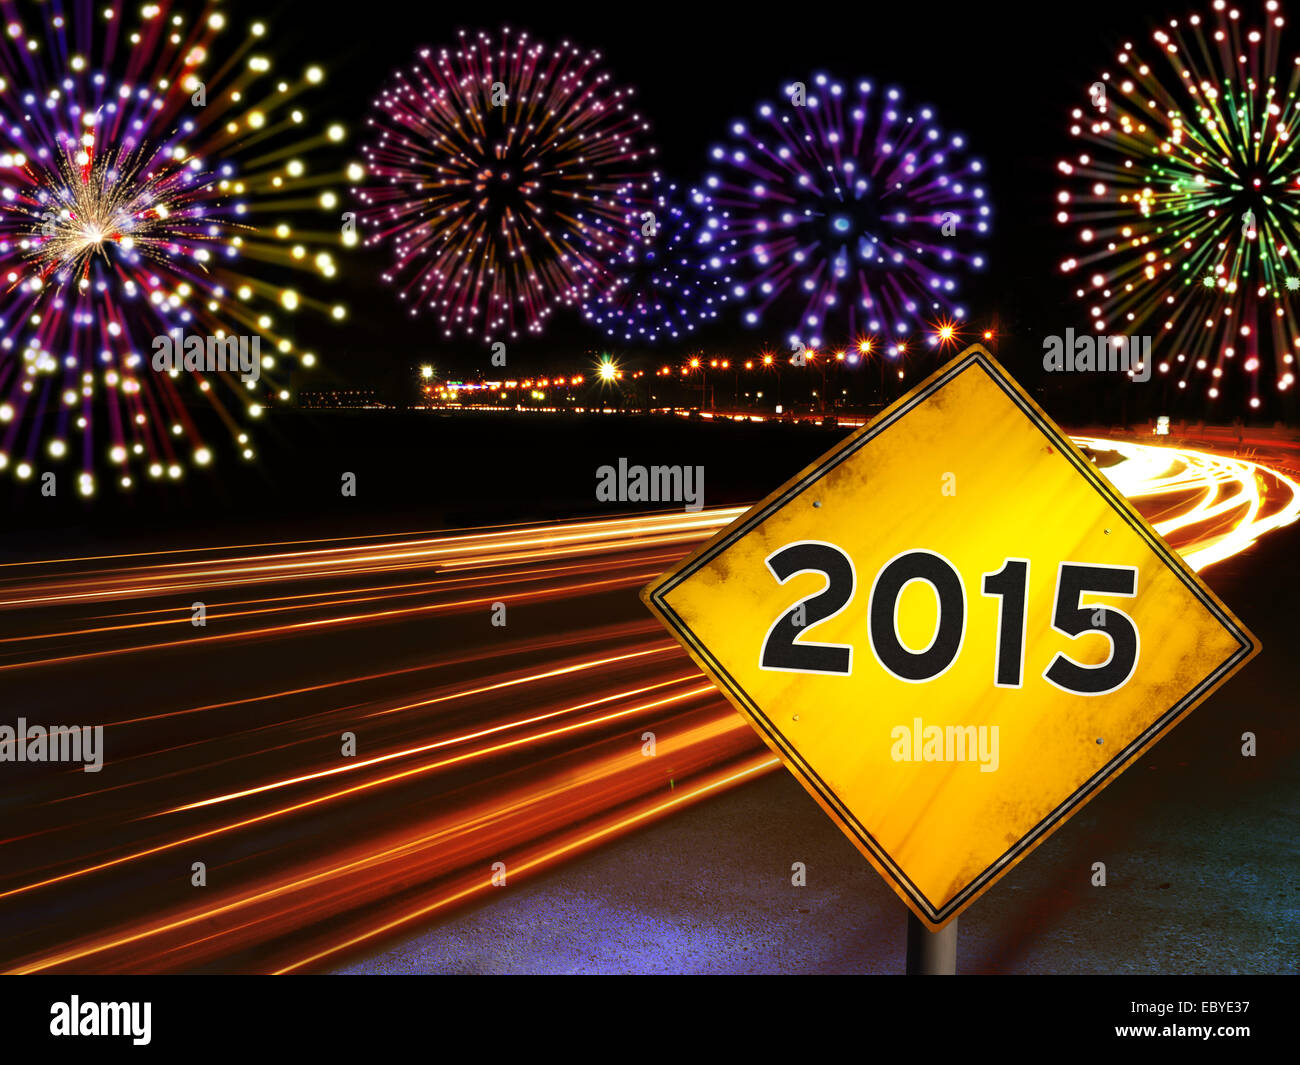 Happy New Year 2015 Fireworks And City Cars Highway Lights With